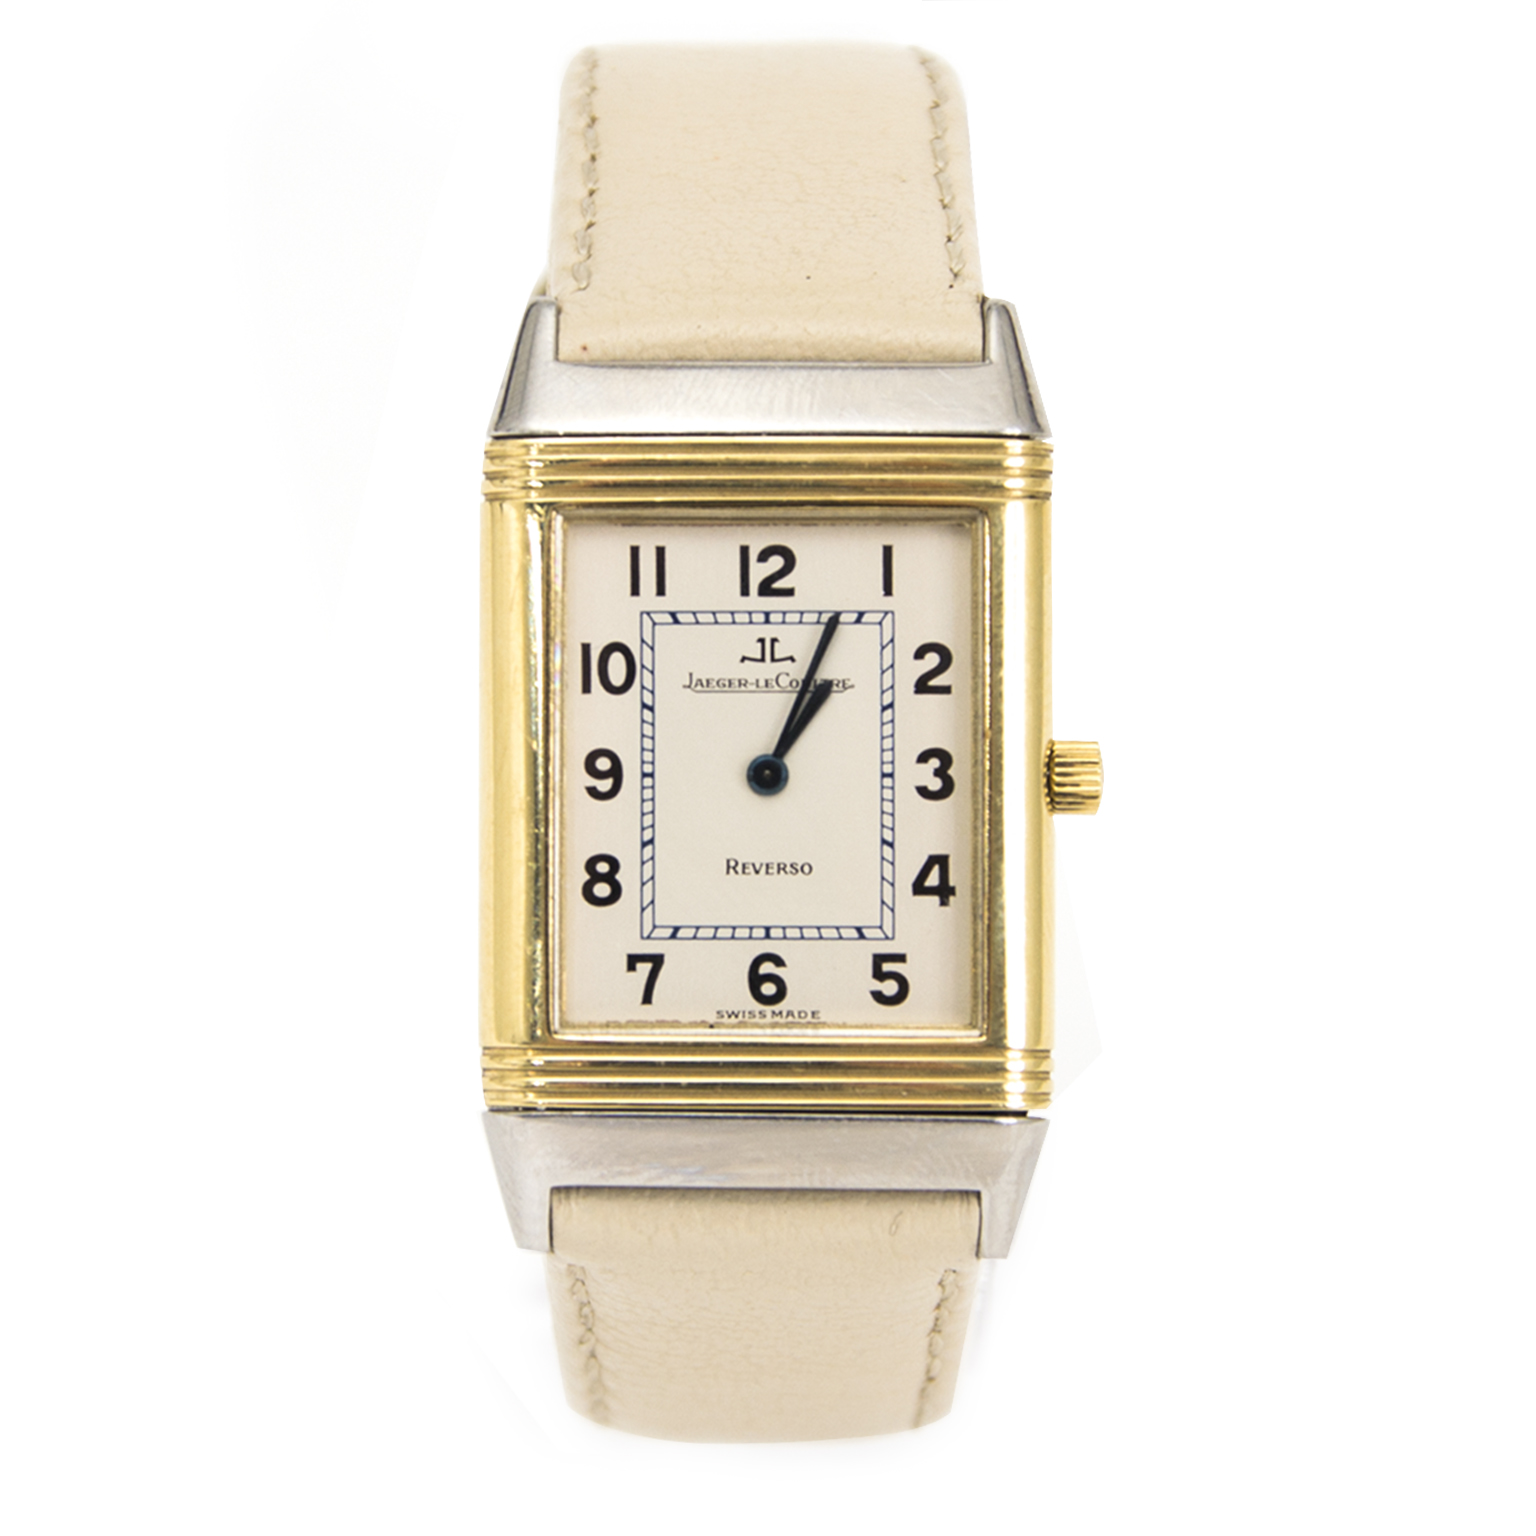 Buy authentic Jaeger-LeCoultre Reverso Classic watch at the right price at LabelLOV vintage webshop. Luxe, vintage, fashion. Safe and secure online shopping. Antwerp, Belgium.